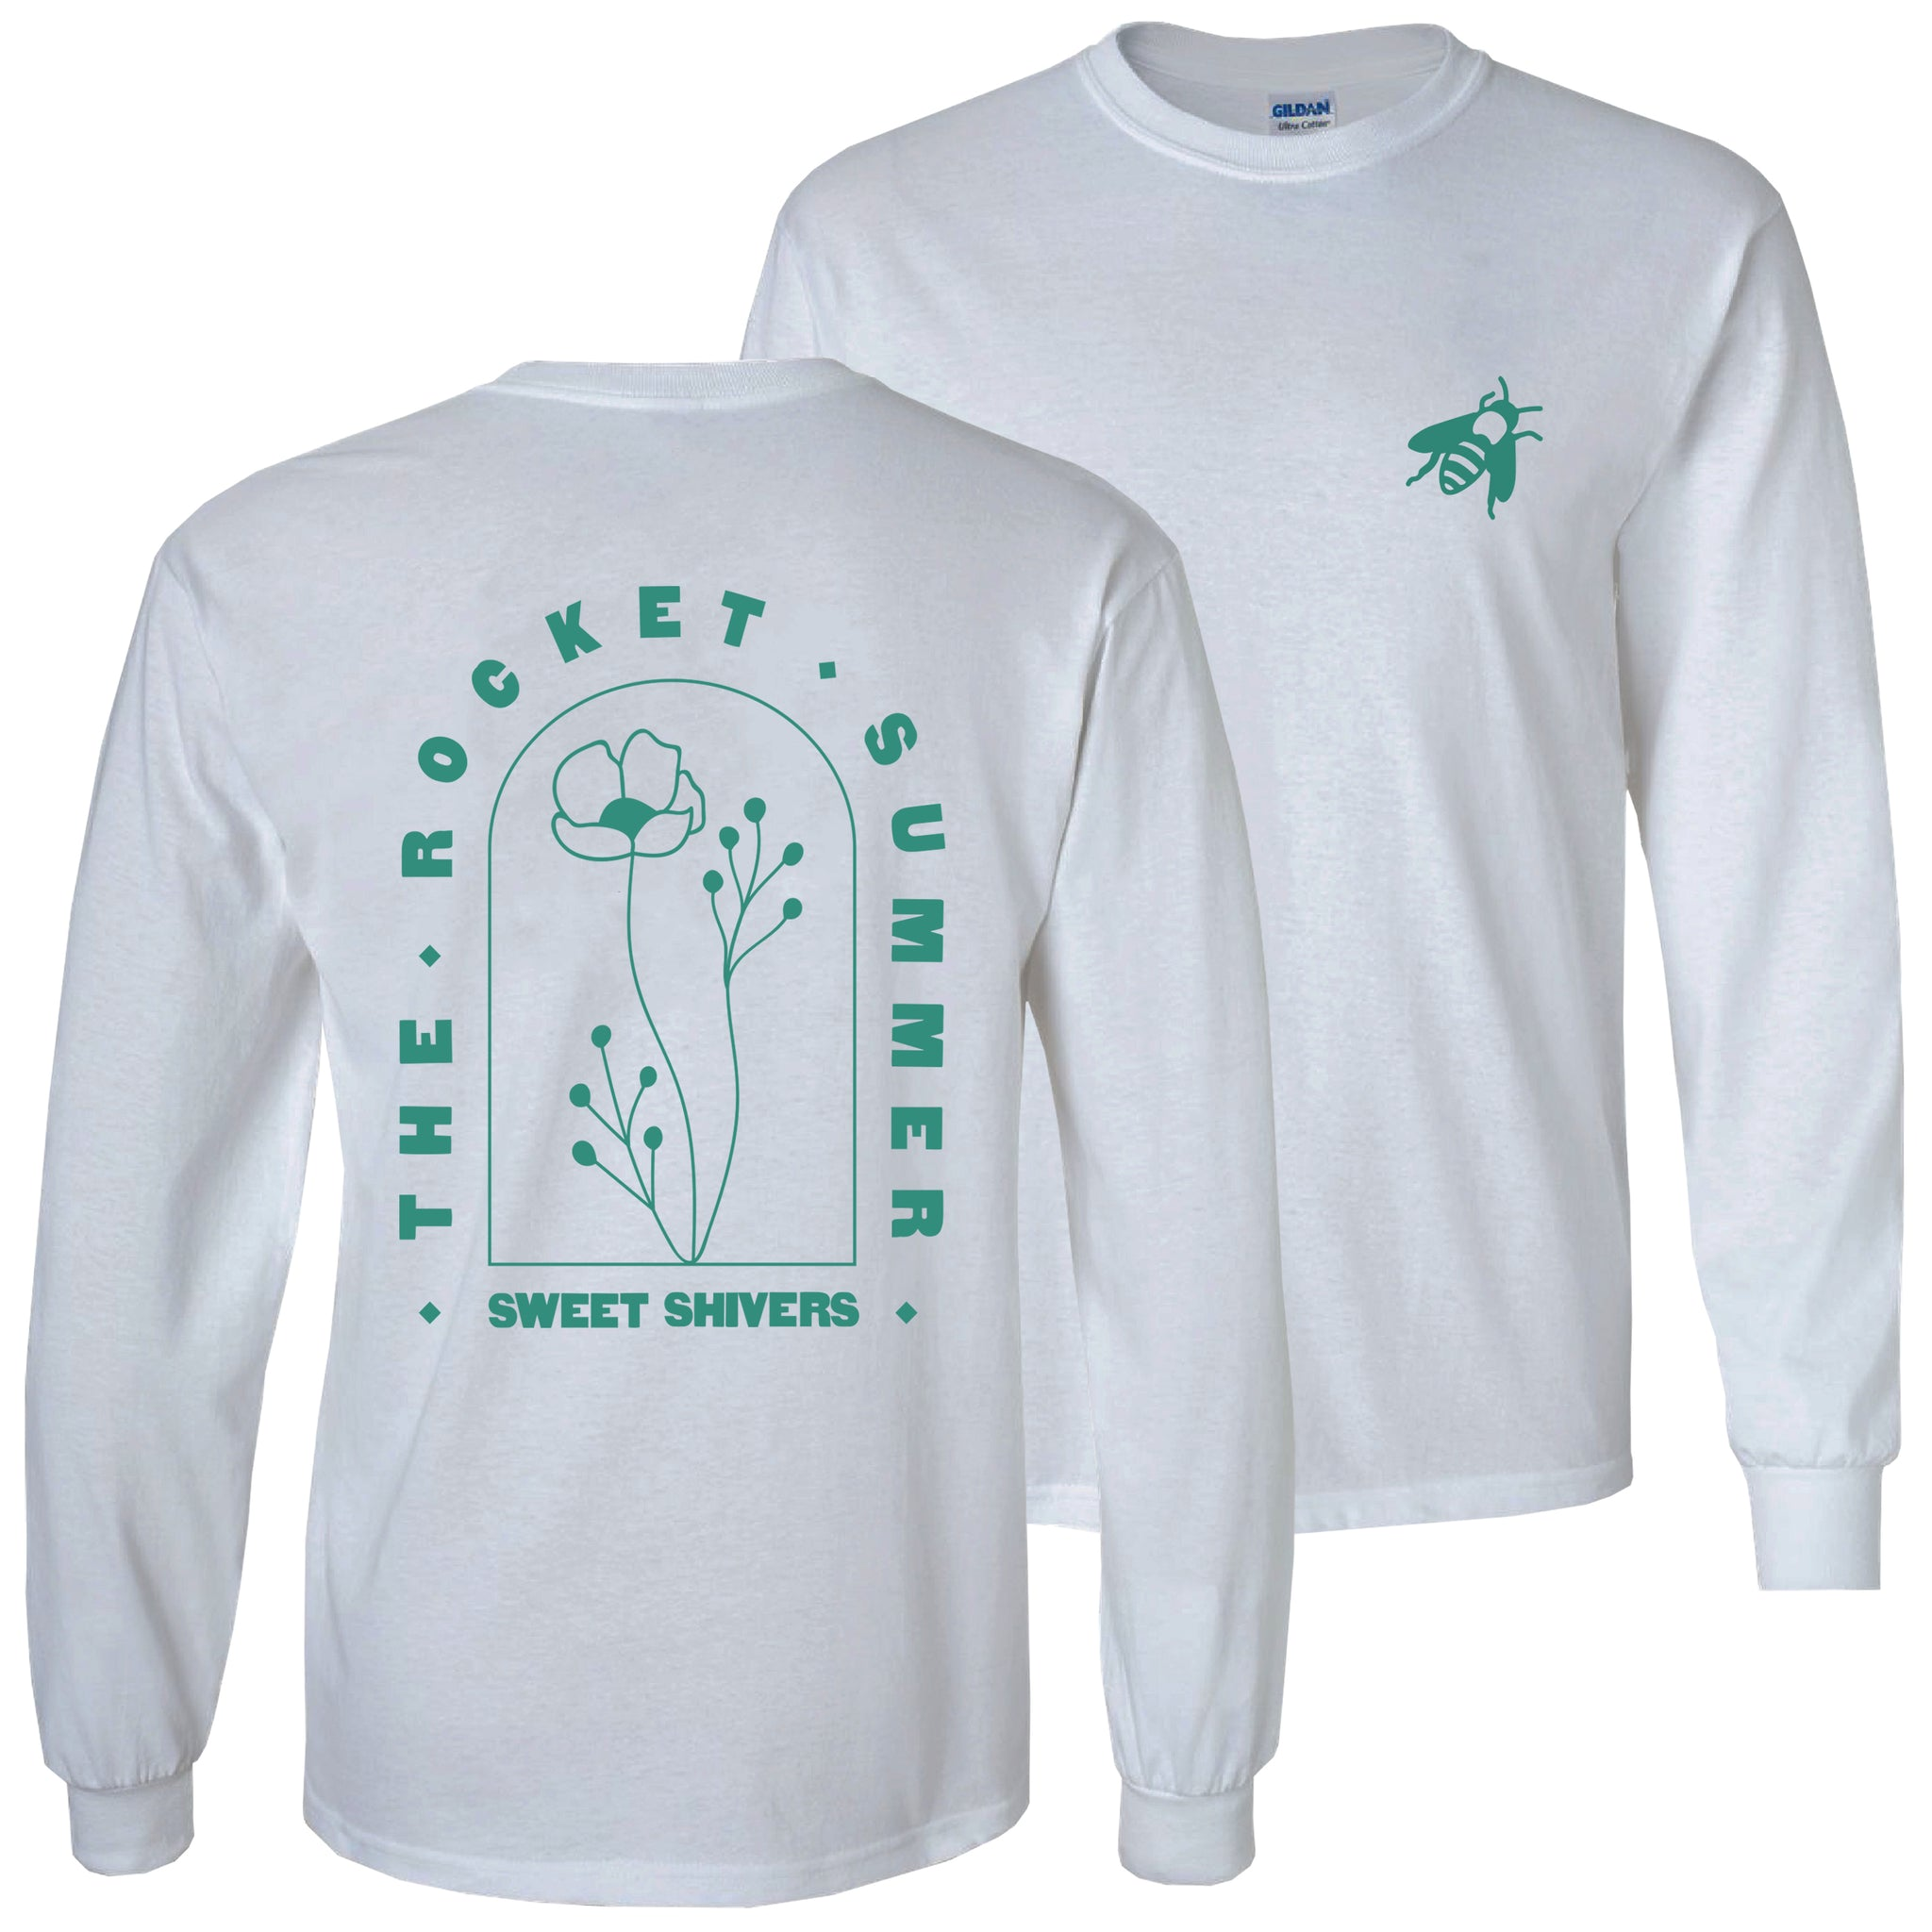 SWEET SHIVERS LONG SLEEVE TEE + ALL ACCESS